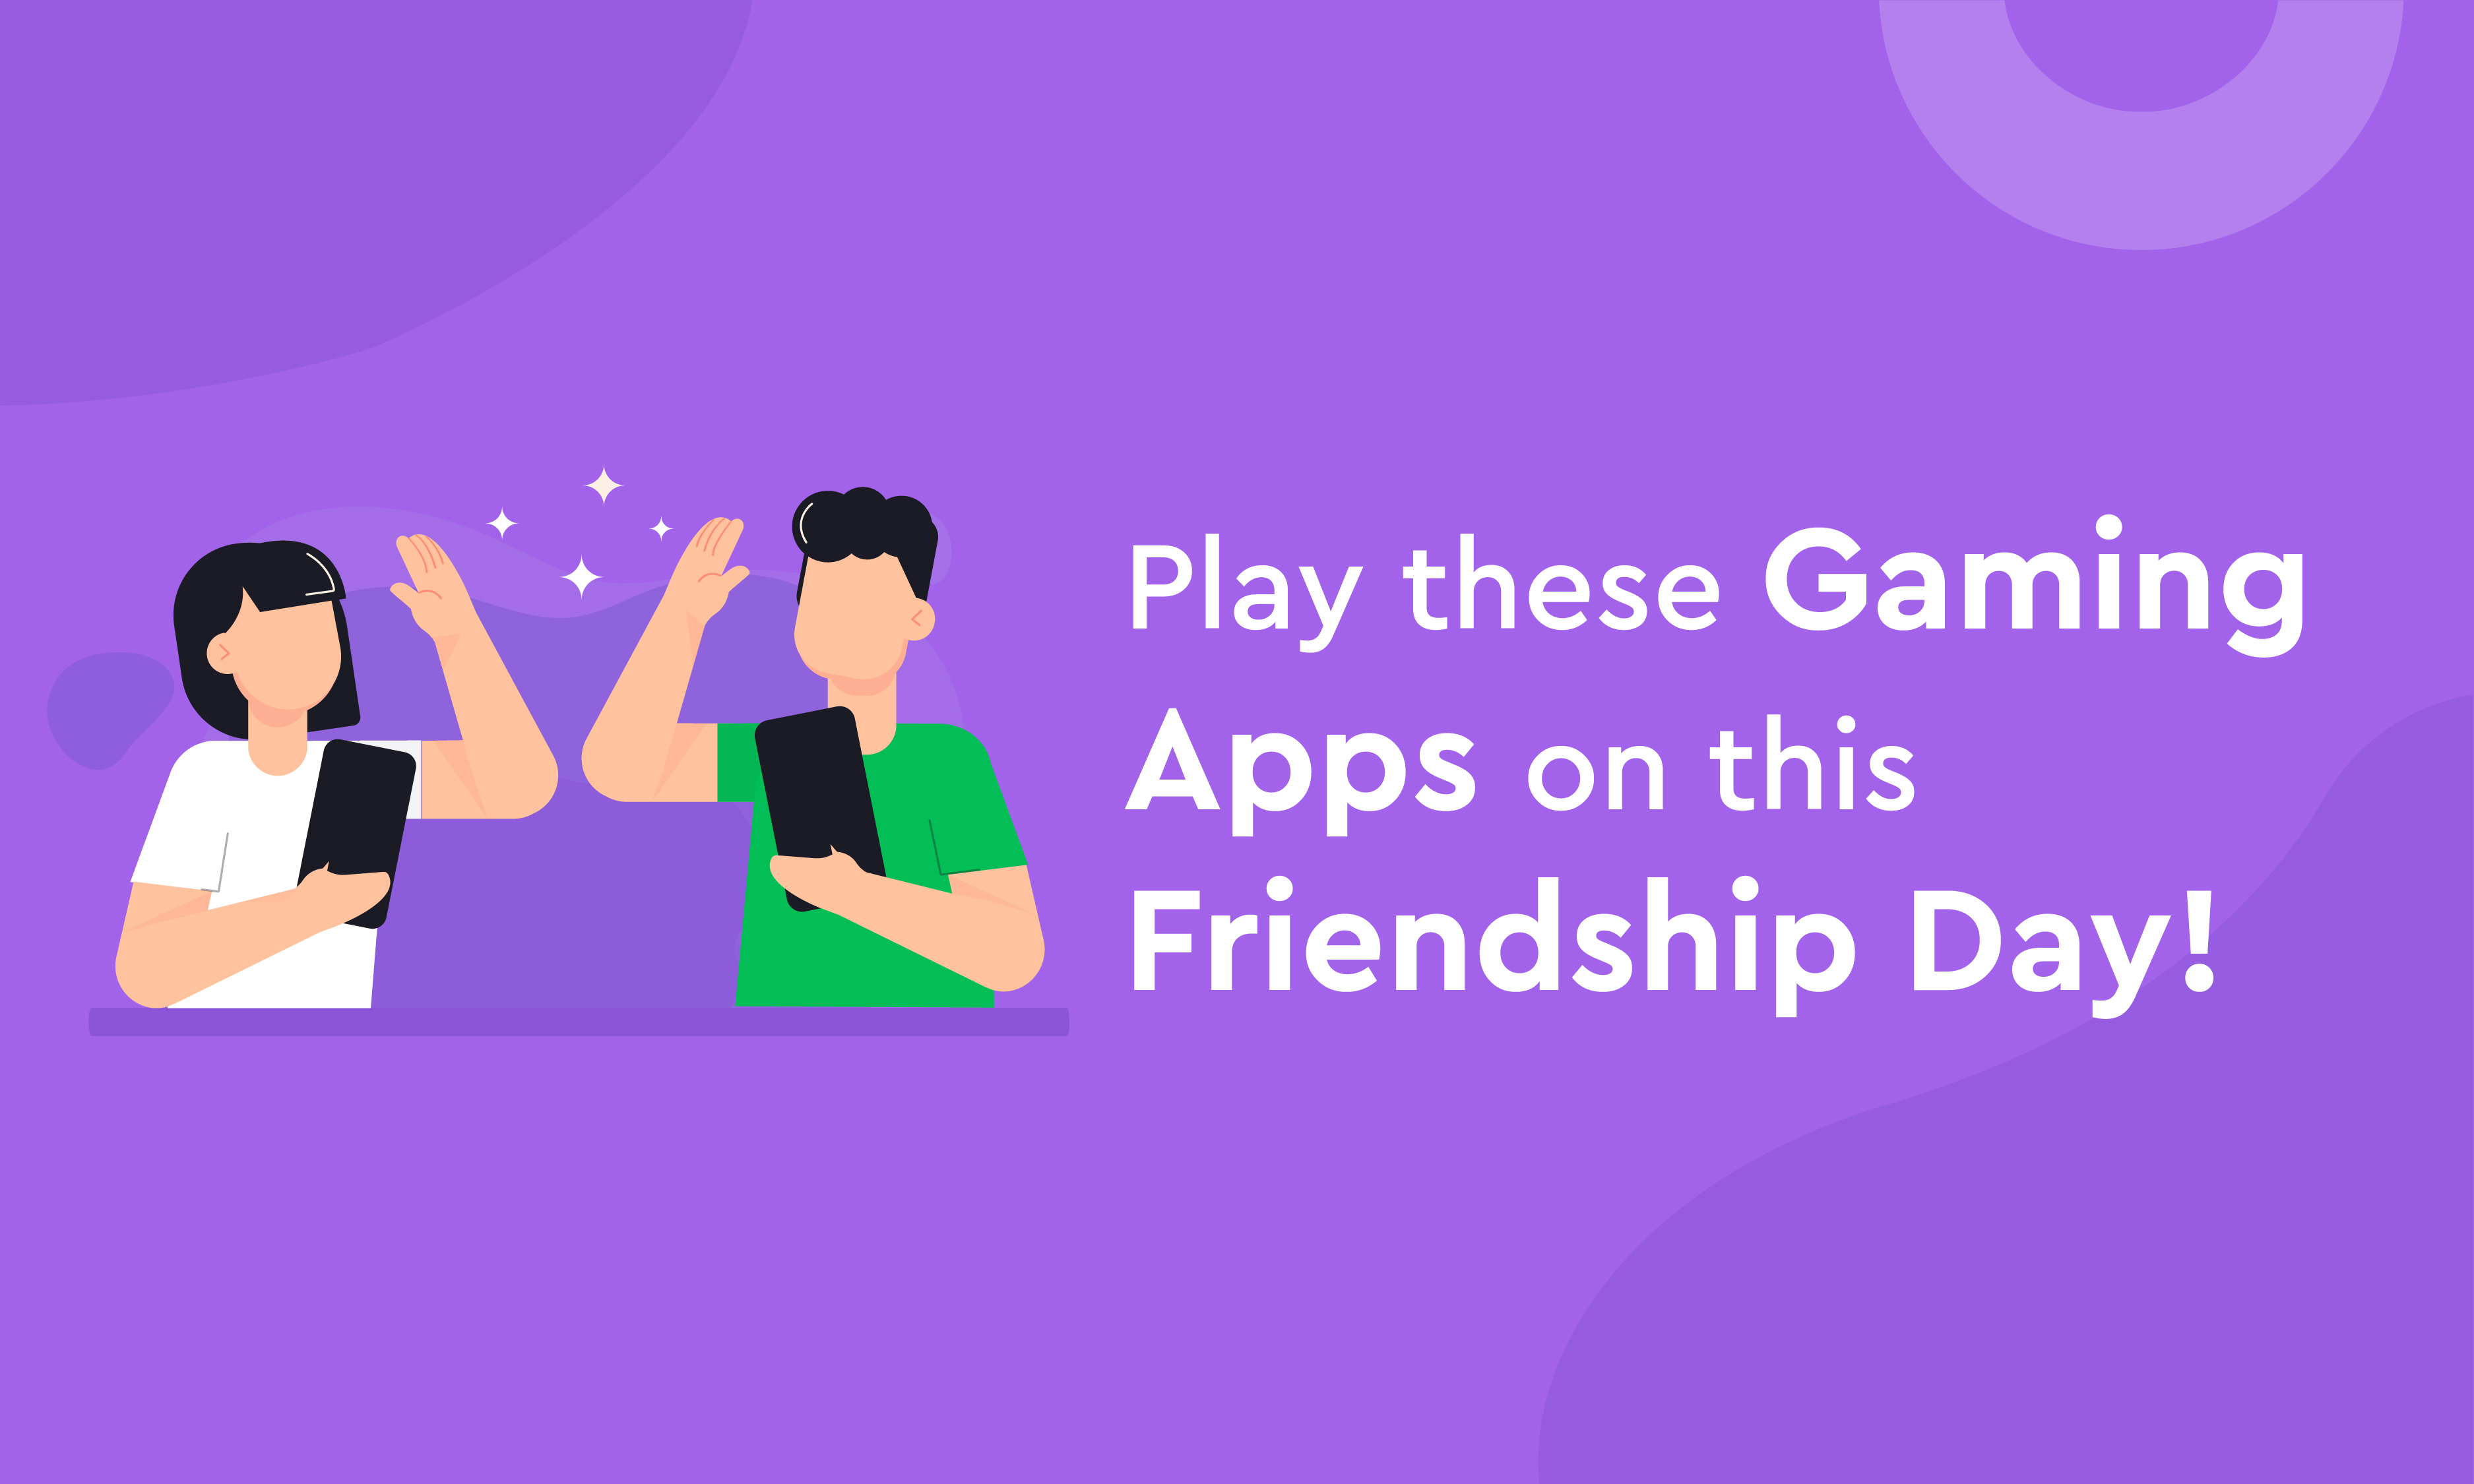 Play these Gaming Apps on  this Friendship Day!